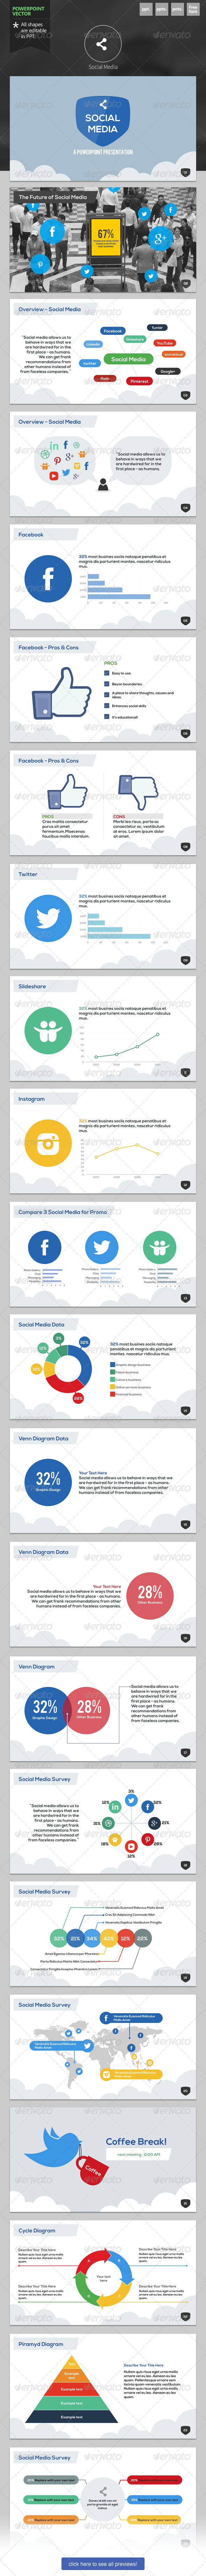 Social Media - Powerpoint Template - PowerPoint Templates Presentation Templates